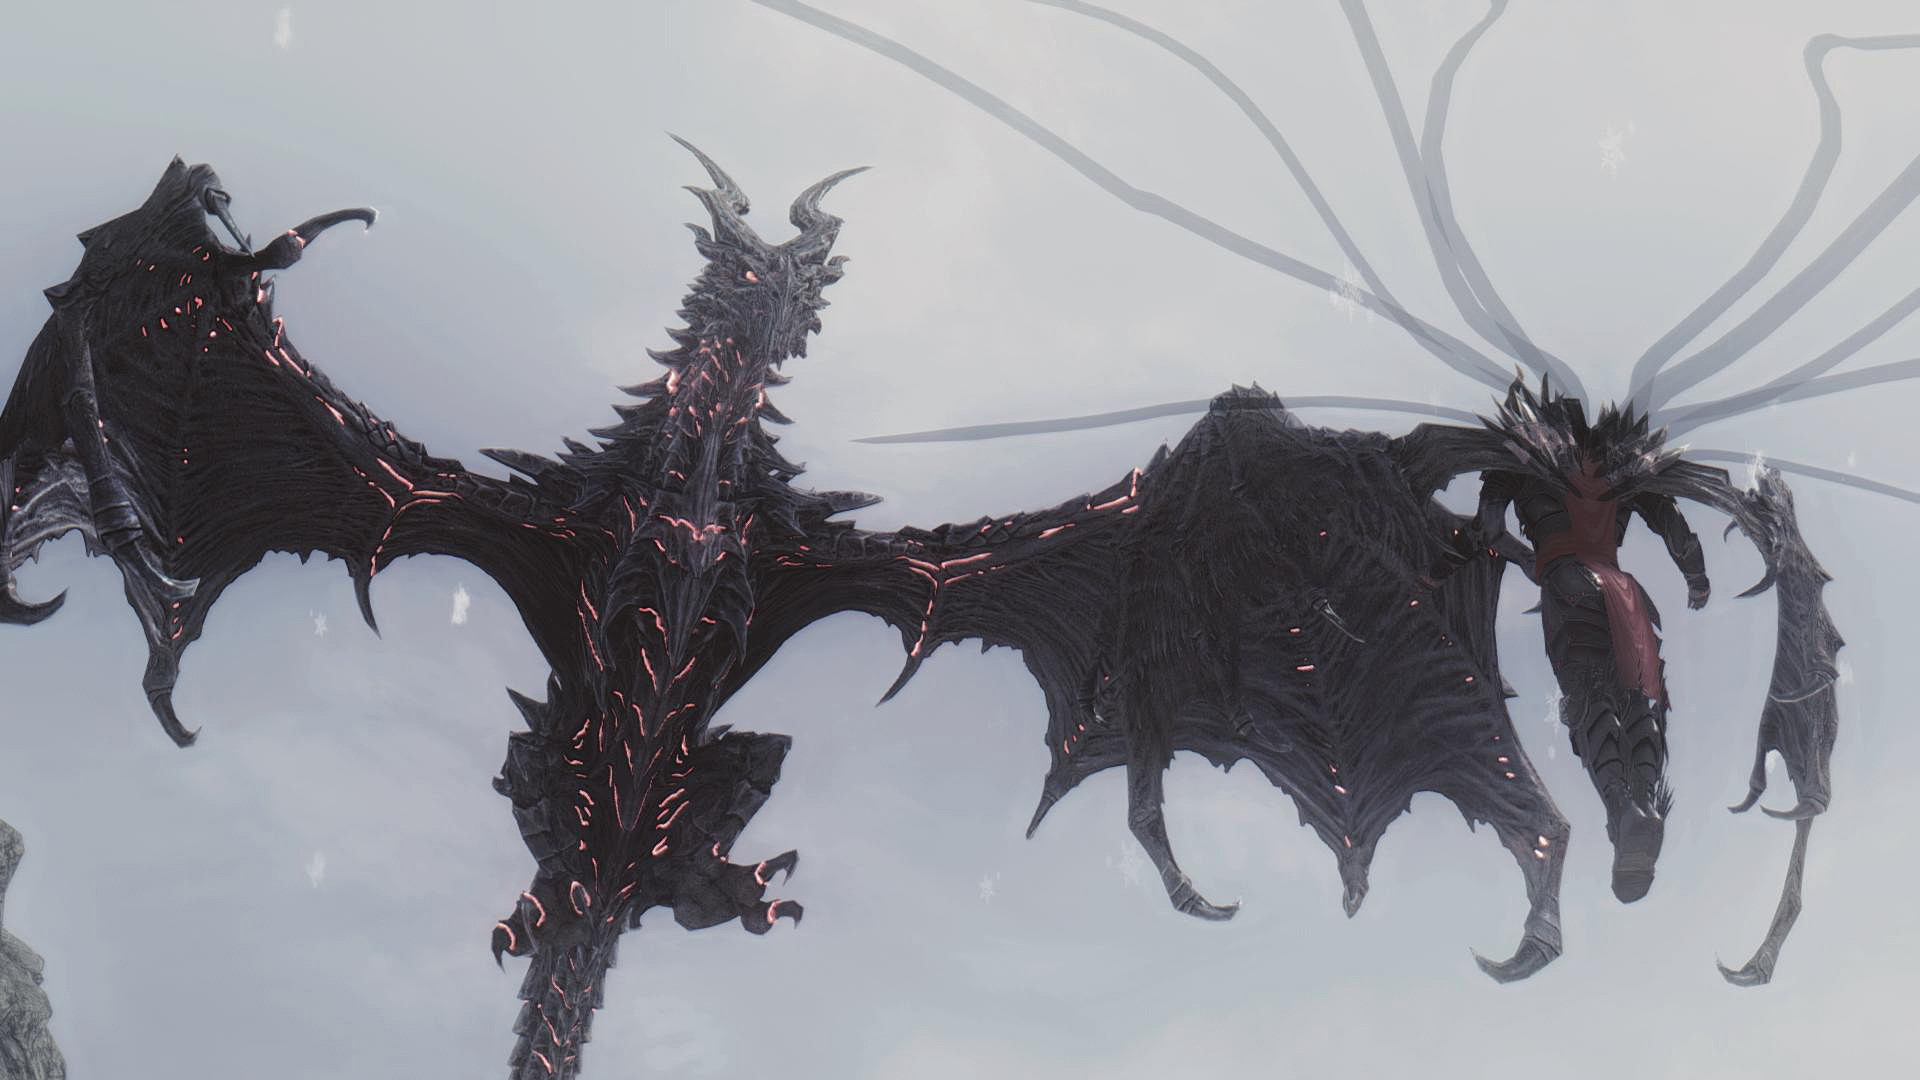 Skyrim Mods Alduin Deathwing Images Deathwing Inspired